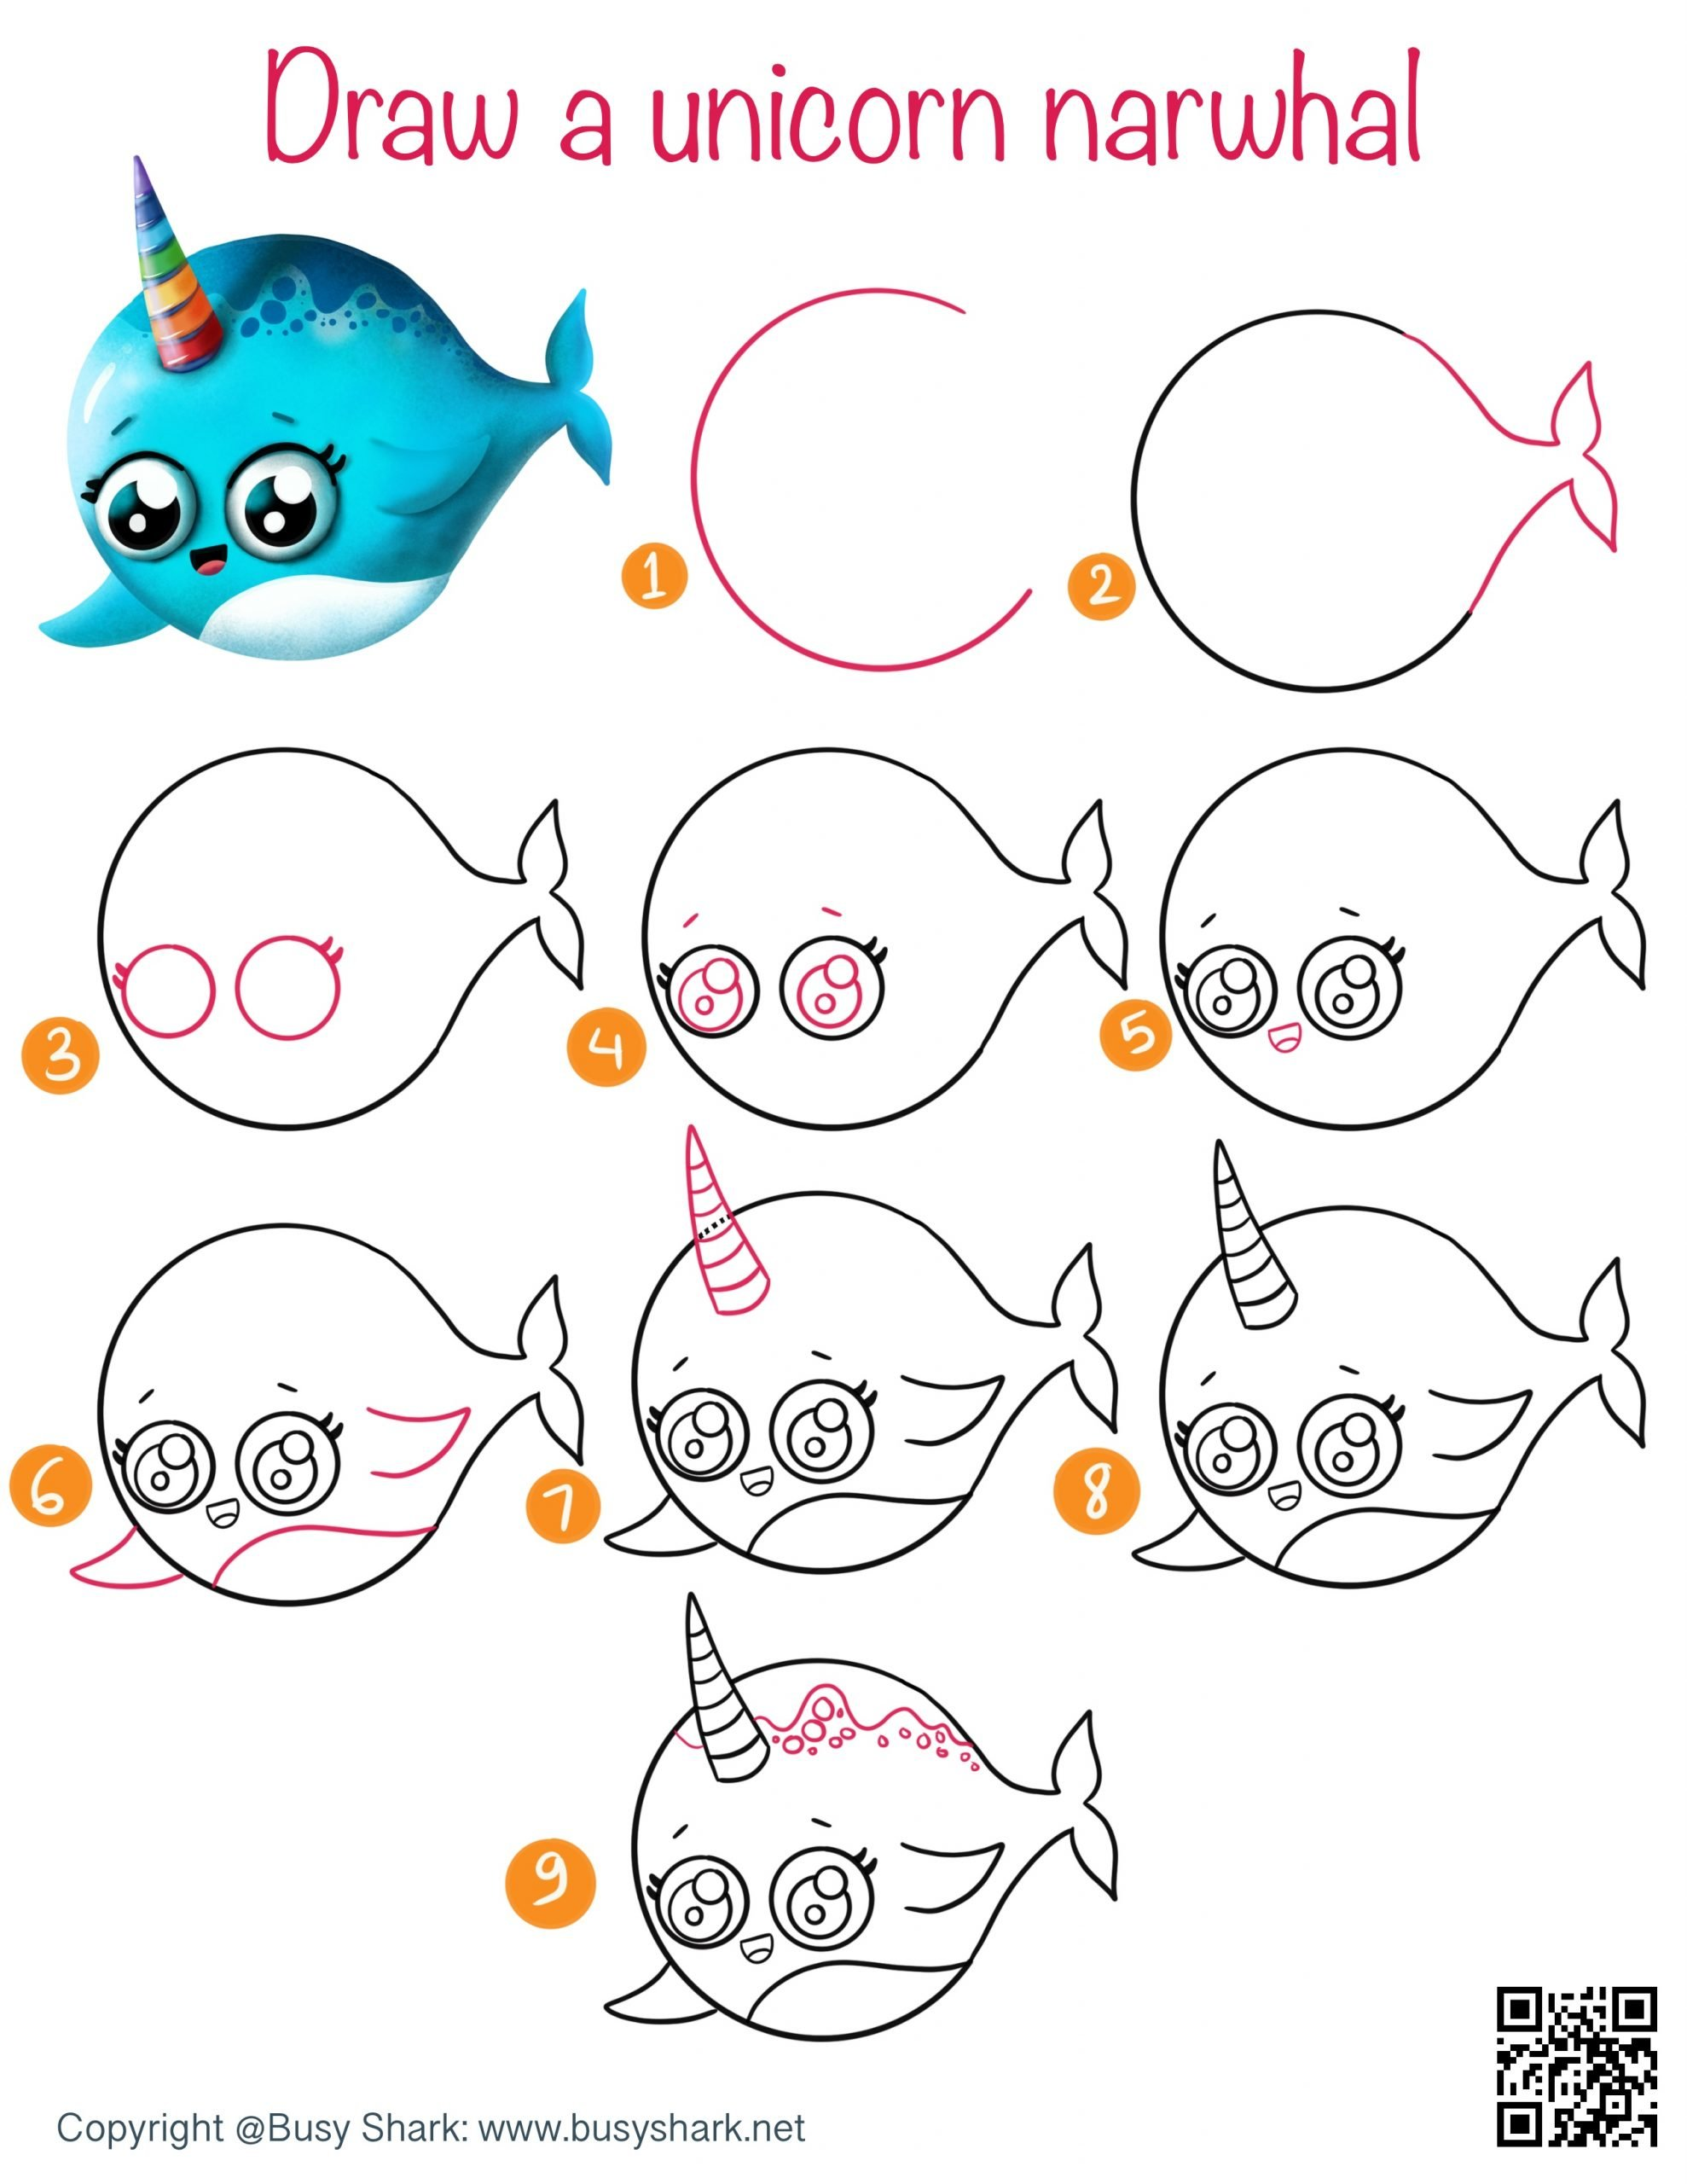 How to draw a narwhal the unicorn of the sea step by step cartoon drawing for kids